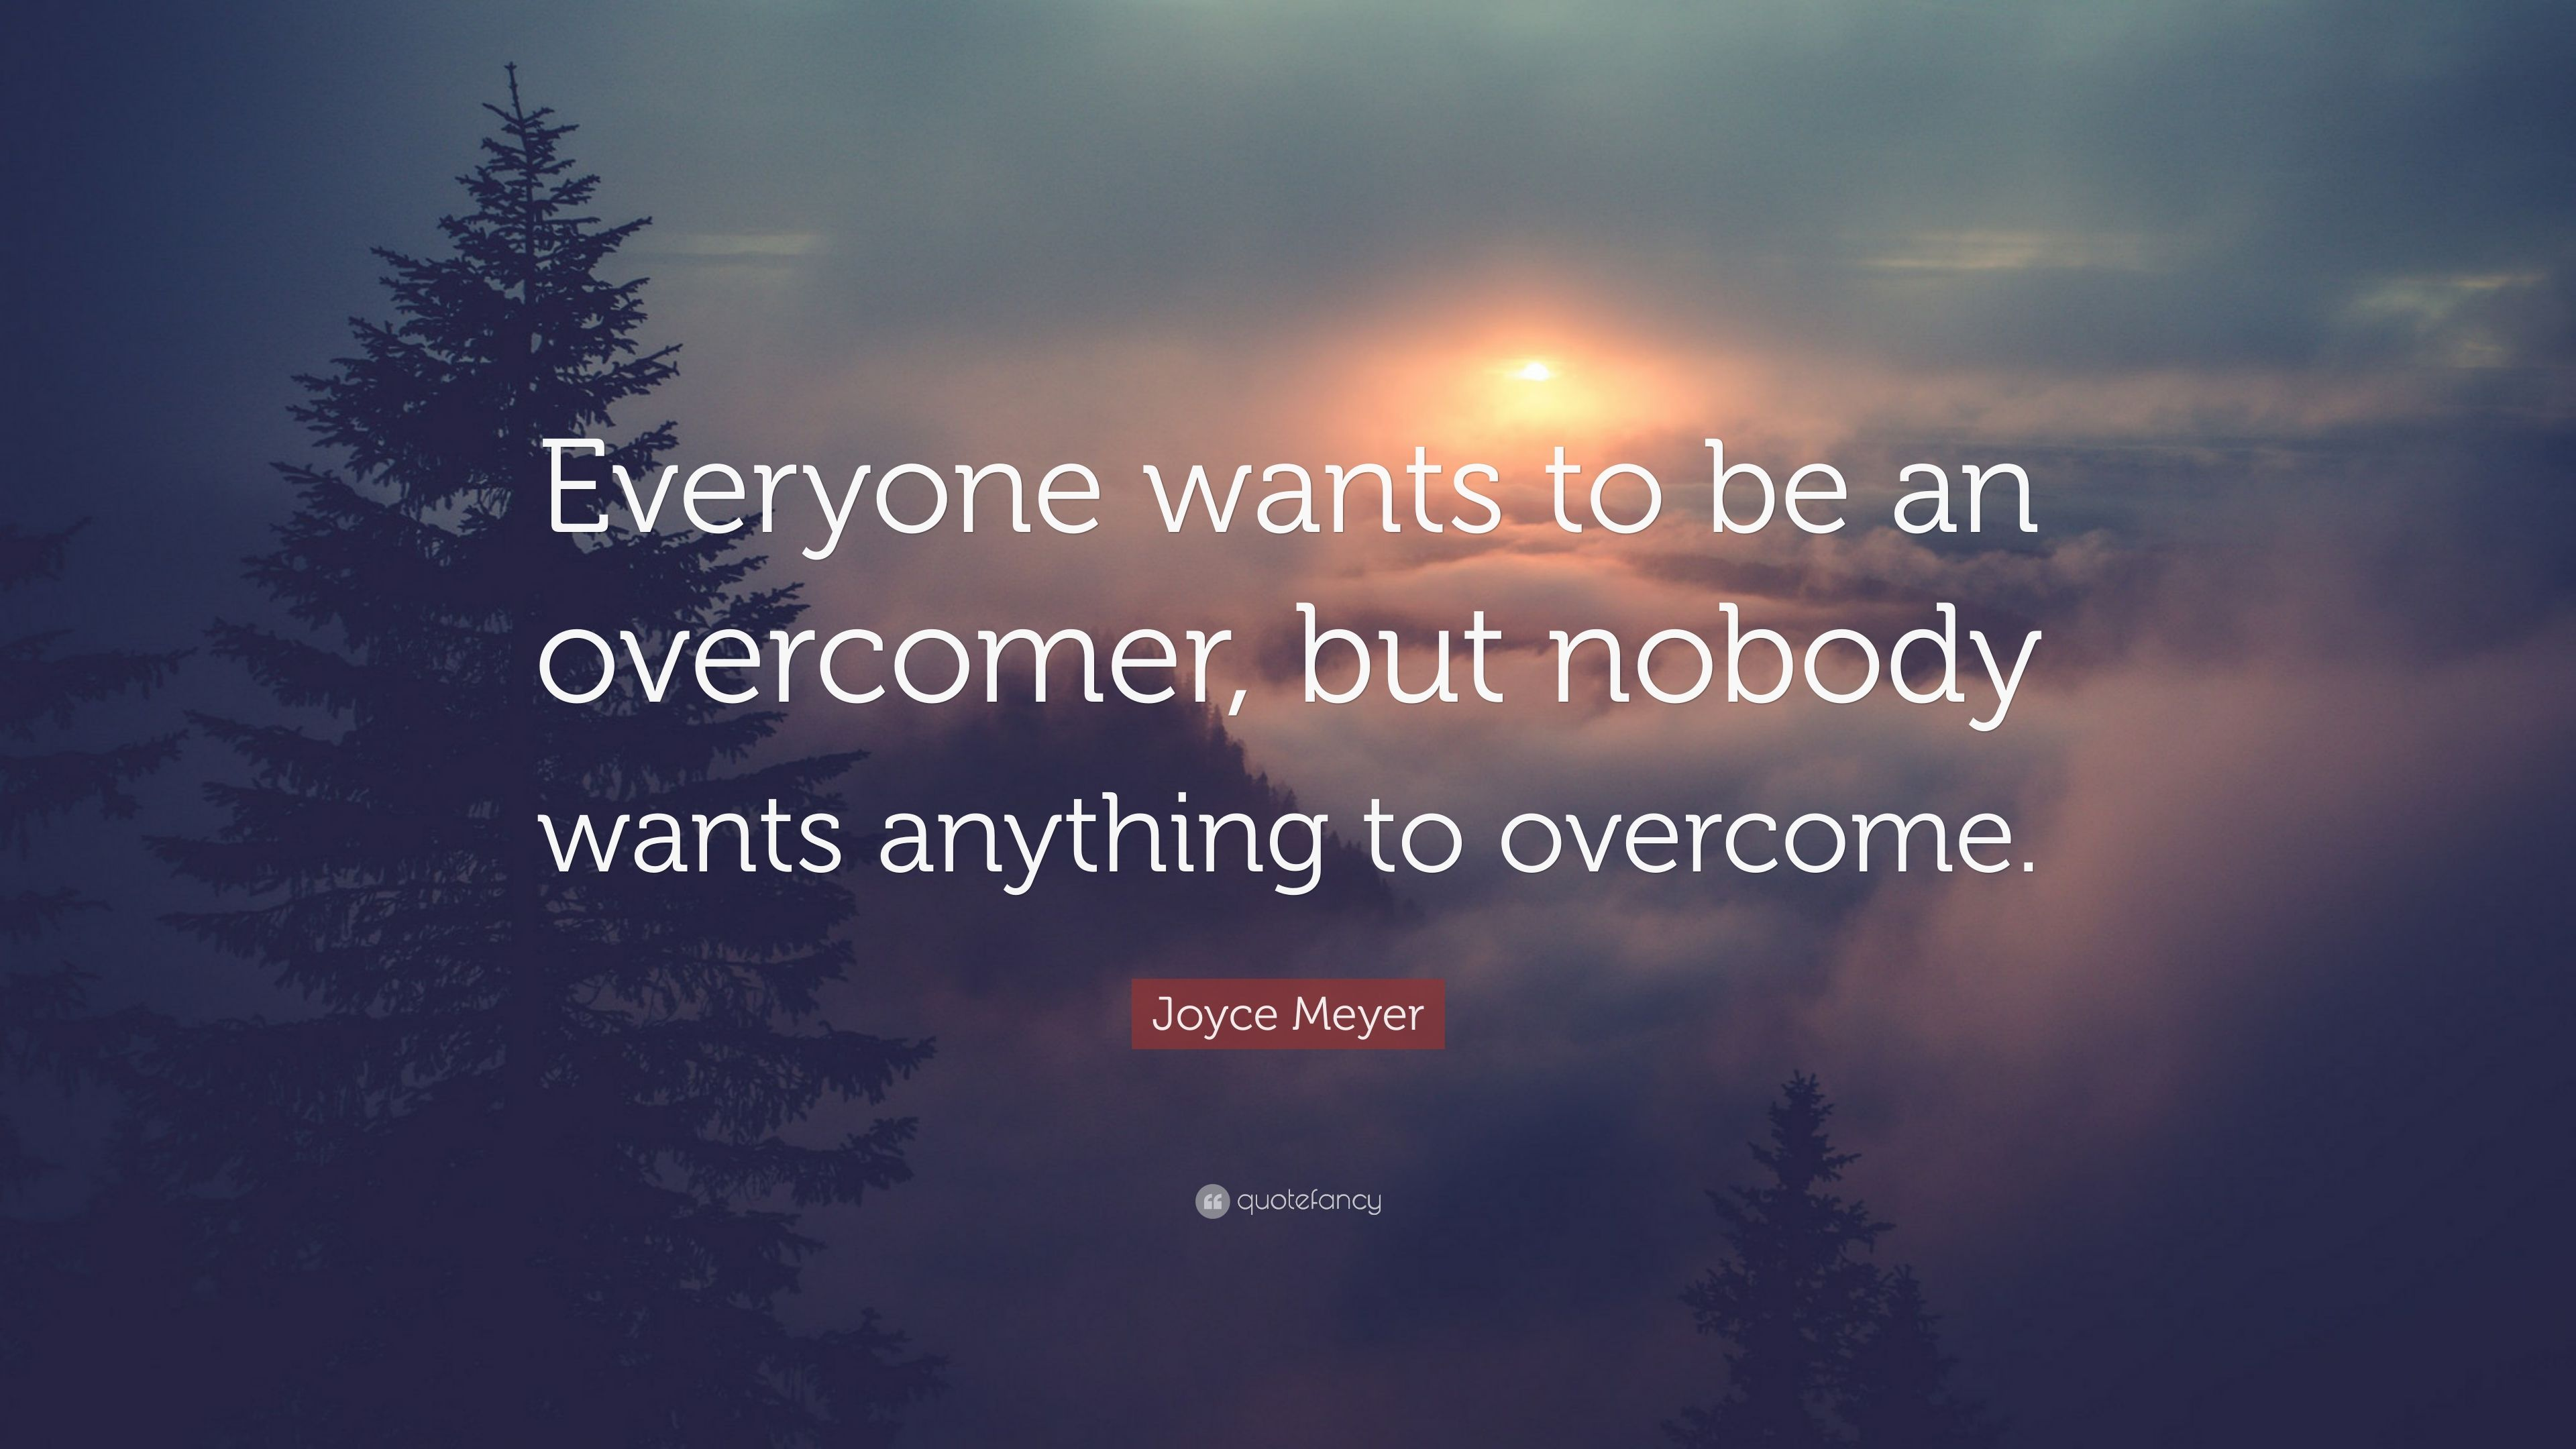 Superieur Joyce Meyer Quote: U201cEveryone Wants To Be An Overcomer, But Nobody Wants  Anything